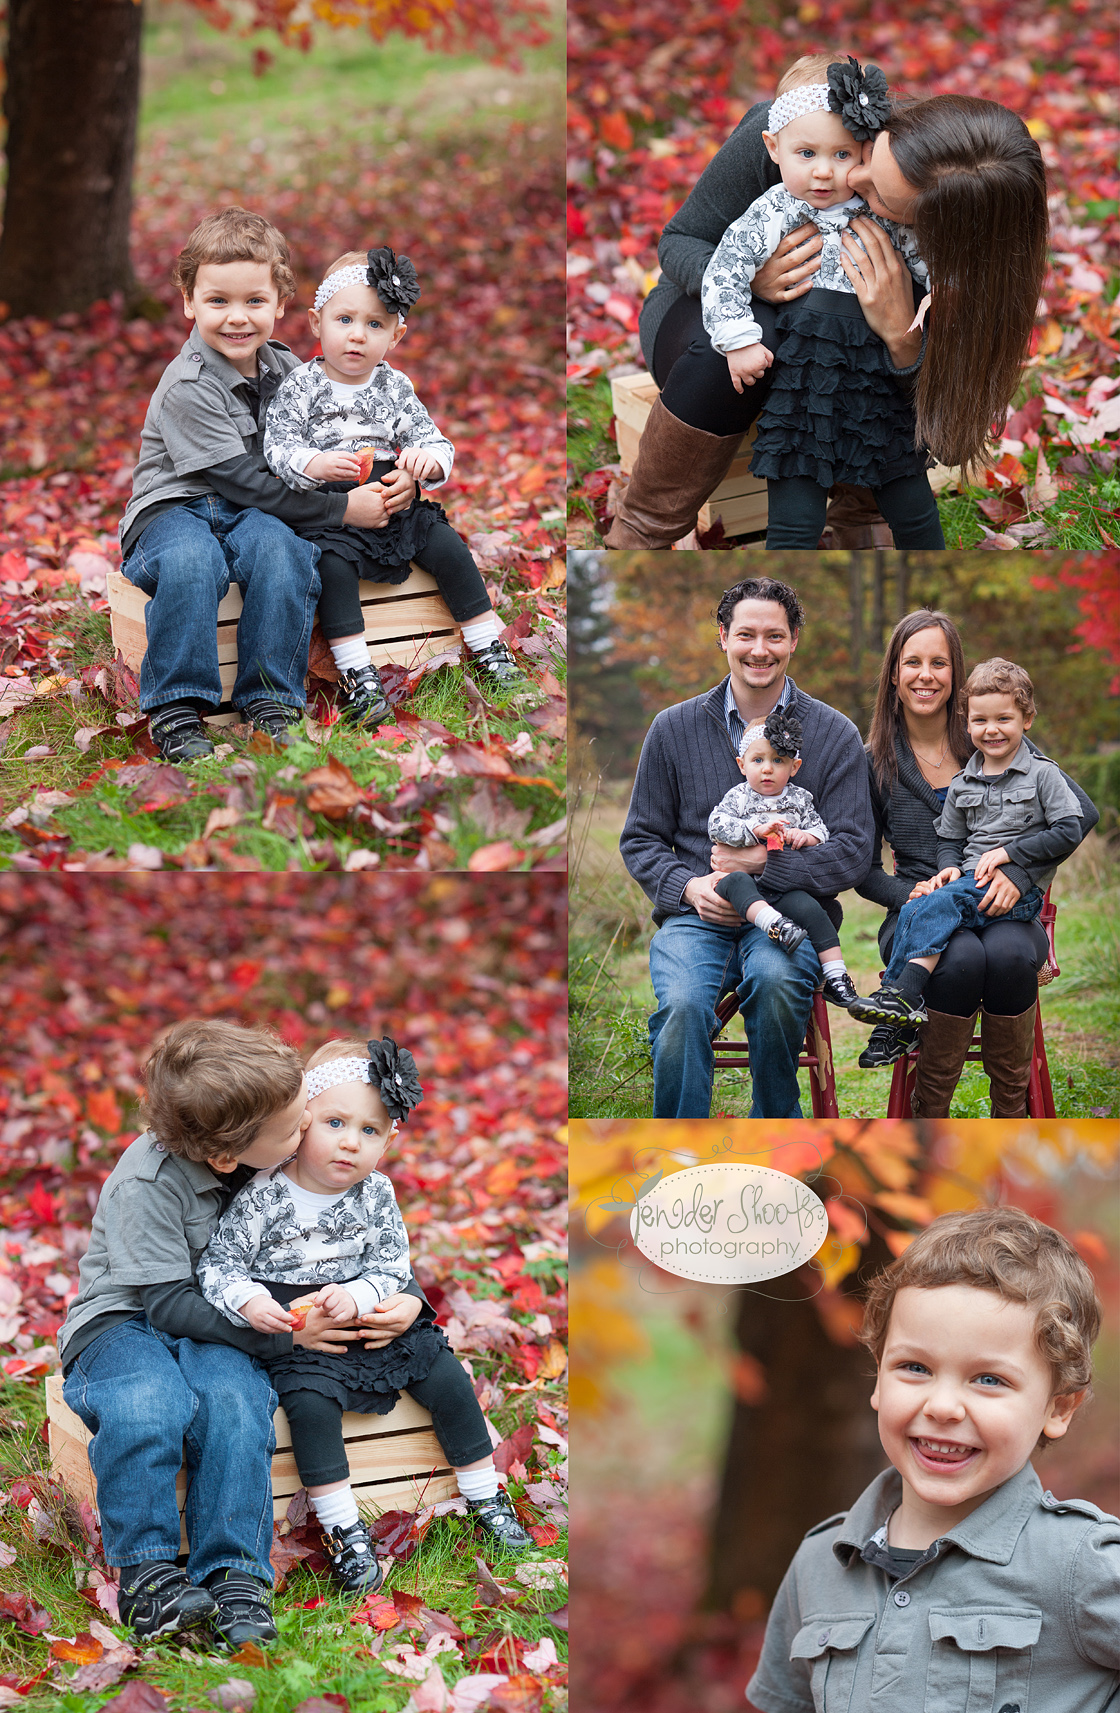 Tender Shoots Fall Photography Sessions